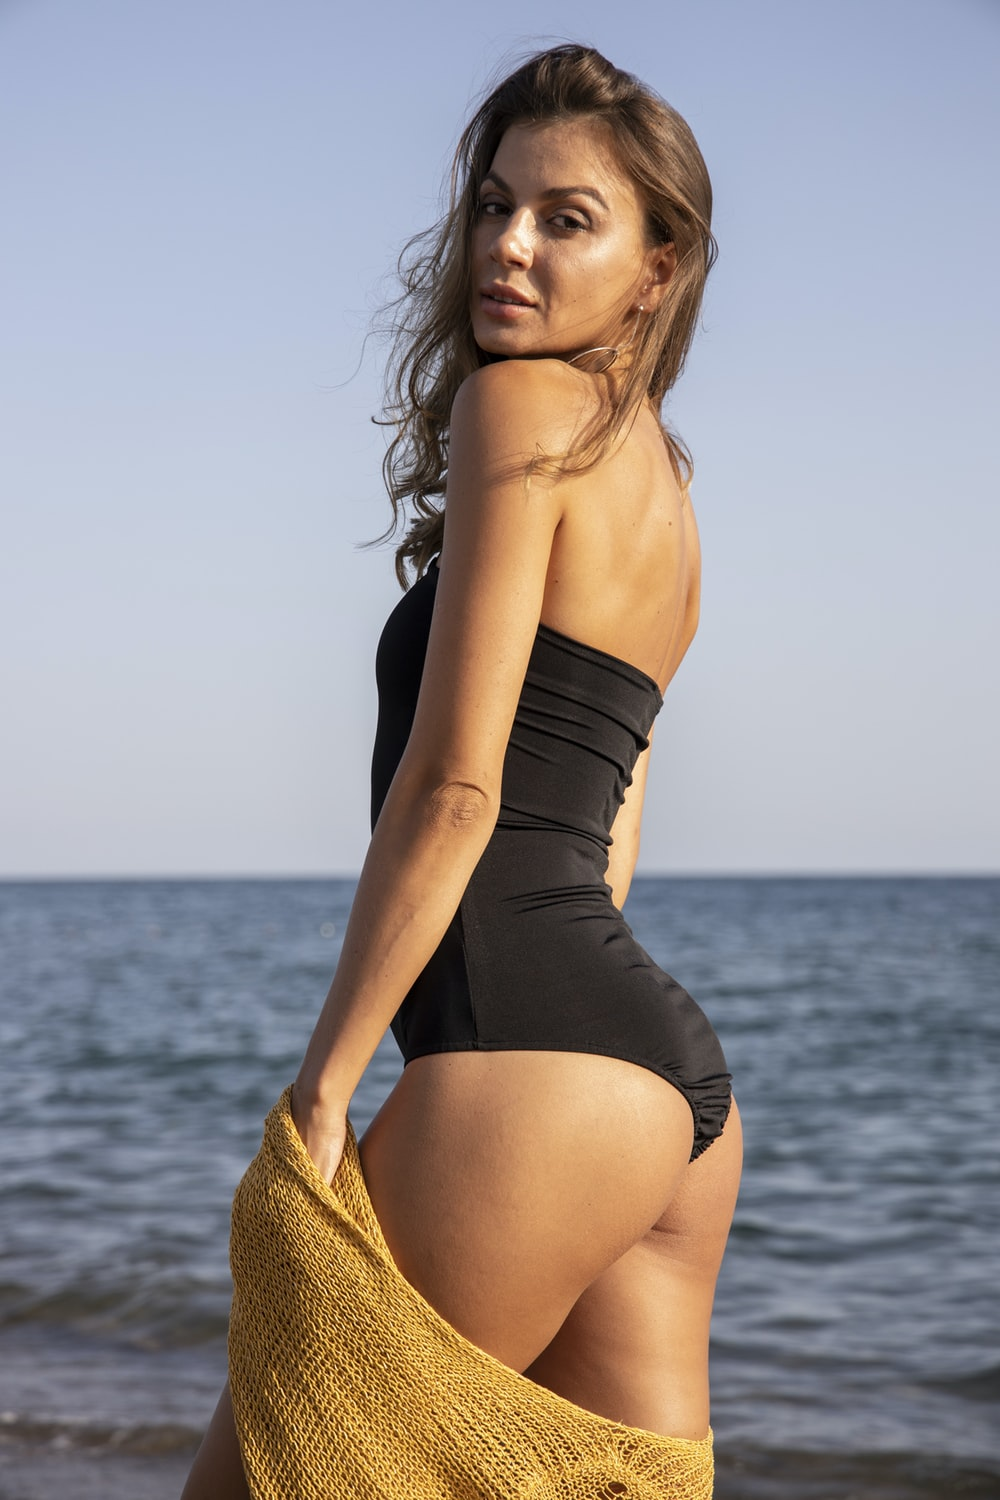 woman in black one piece swimsuit standing on sea shore during daytime